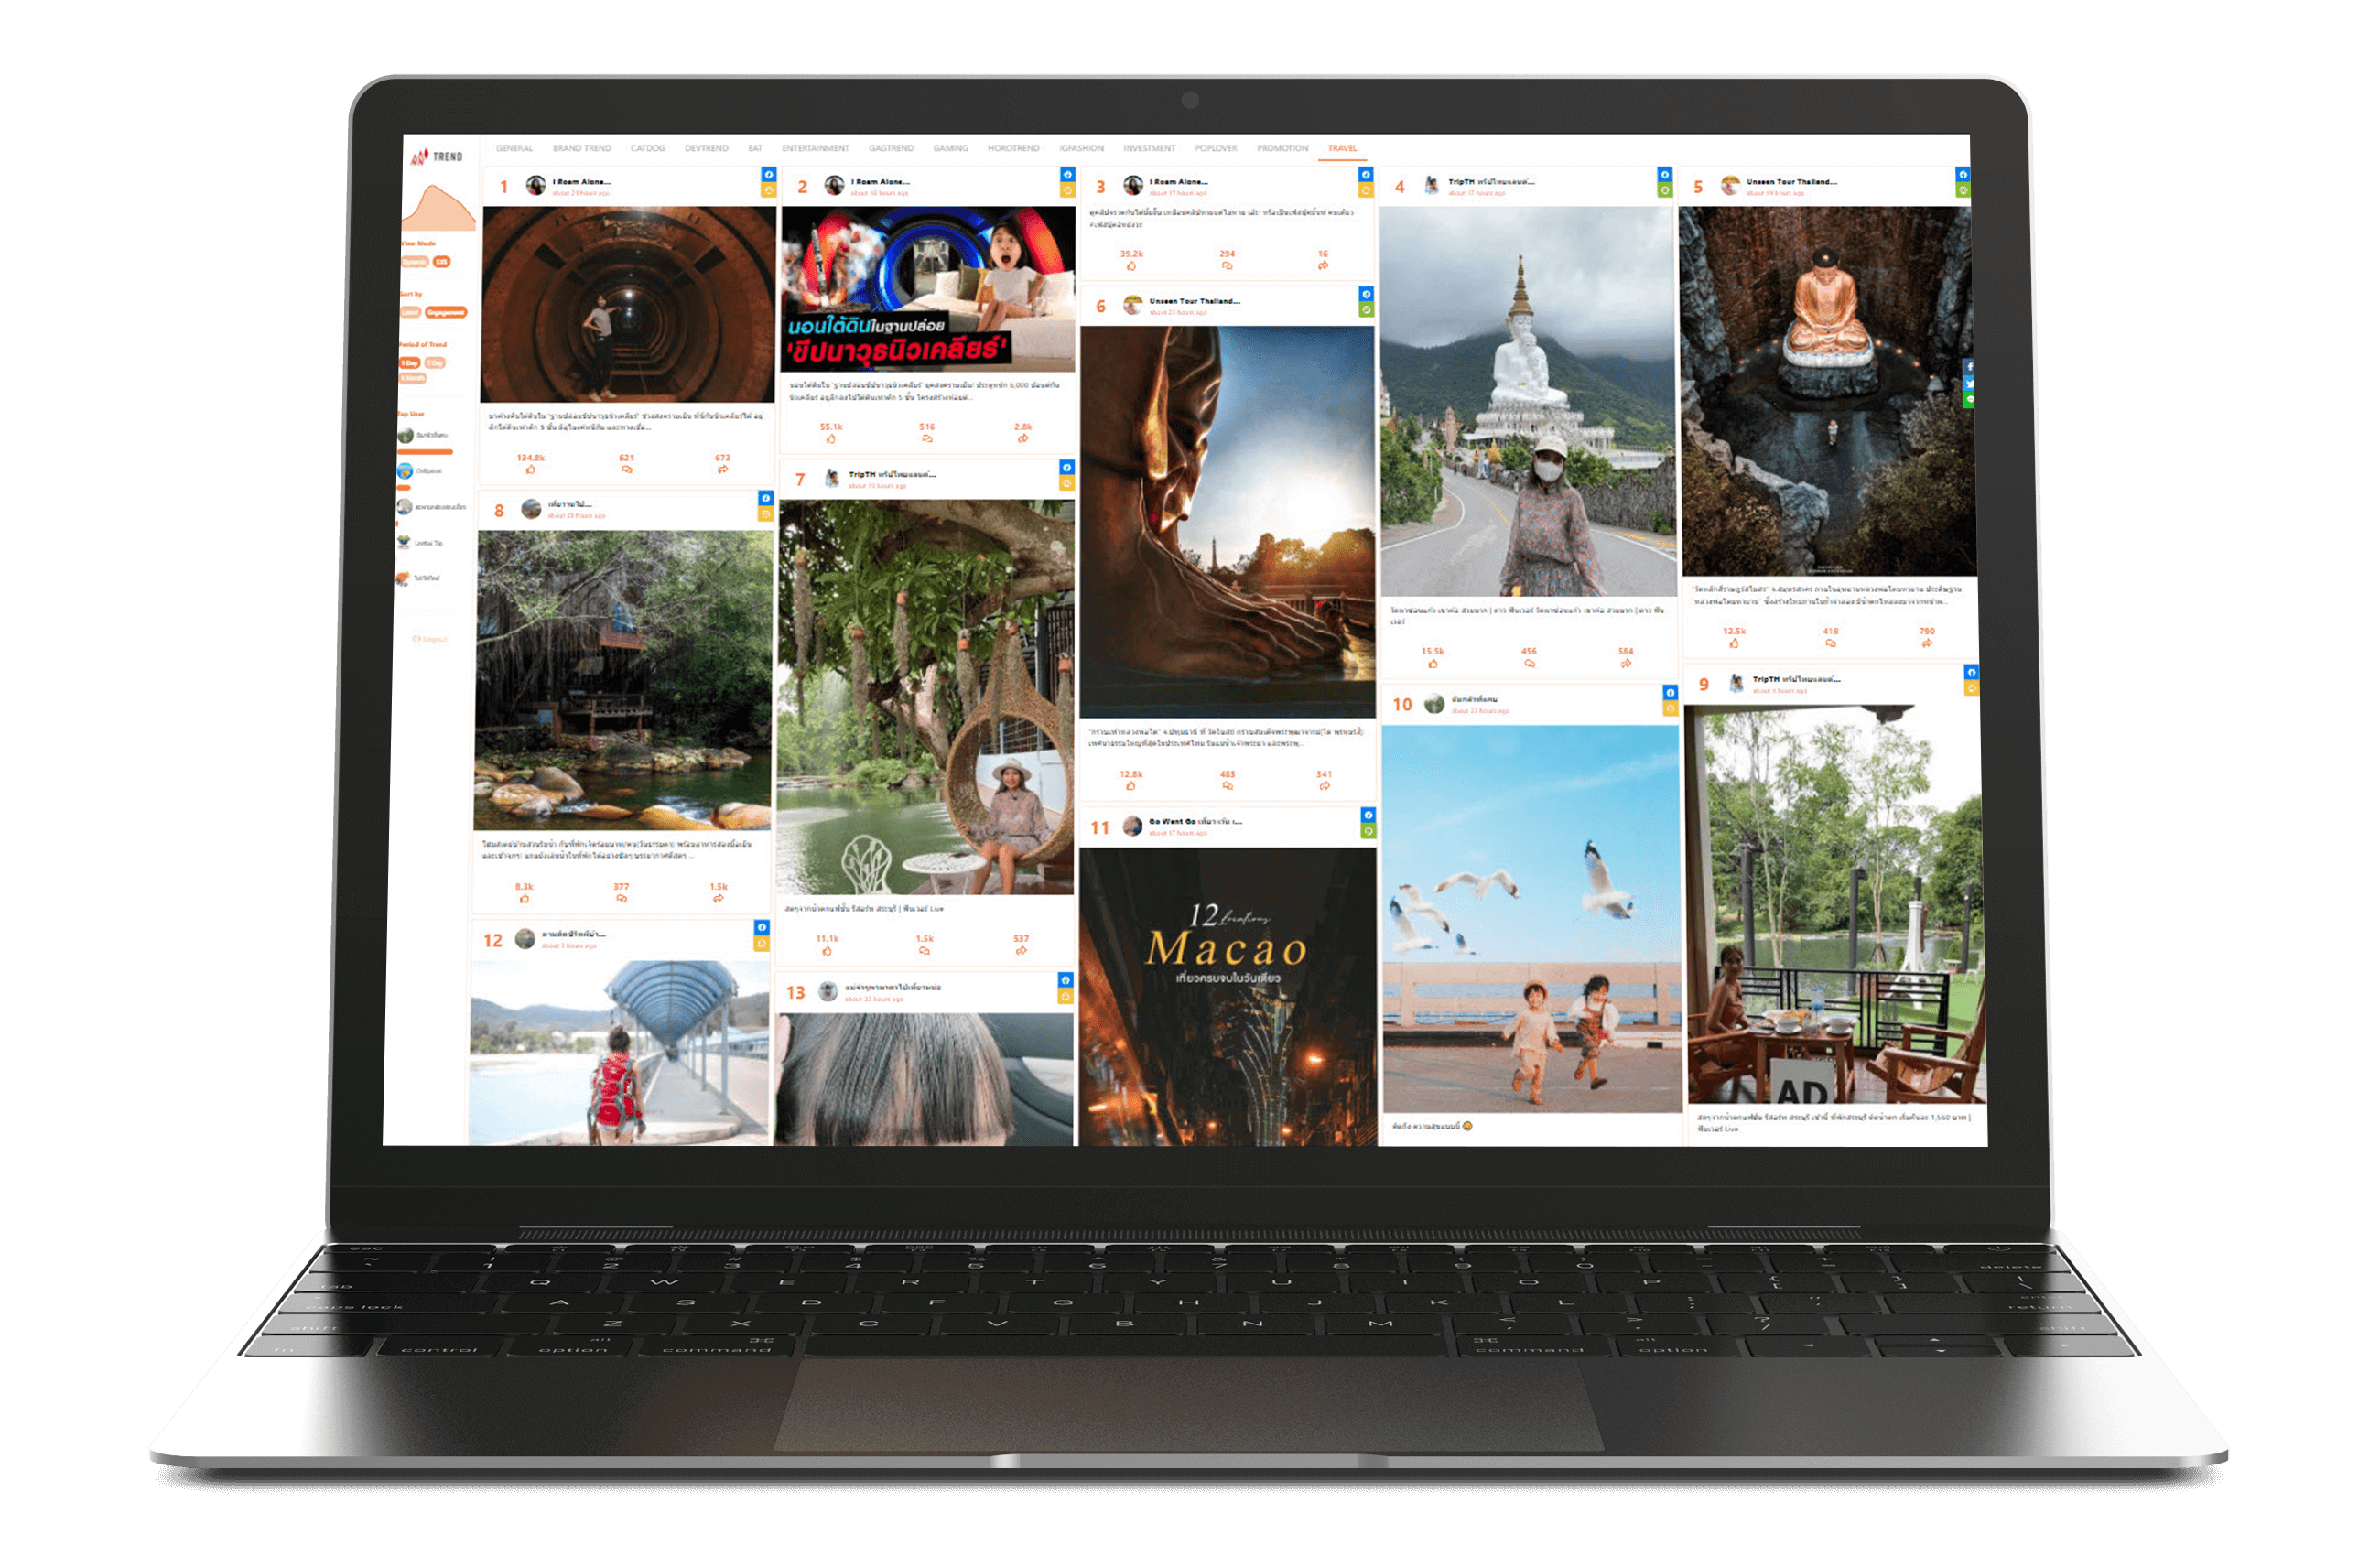 WISESIGHT TRAVEL TREND : A Traveling Idea Hub Within The Social Media